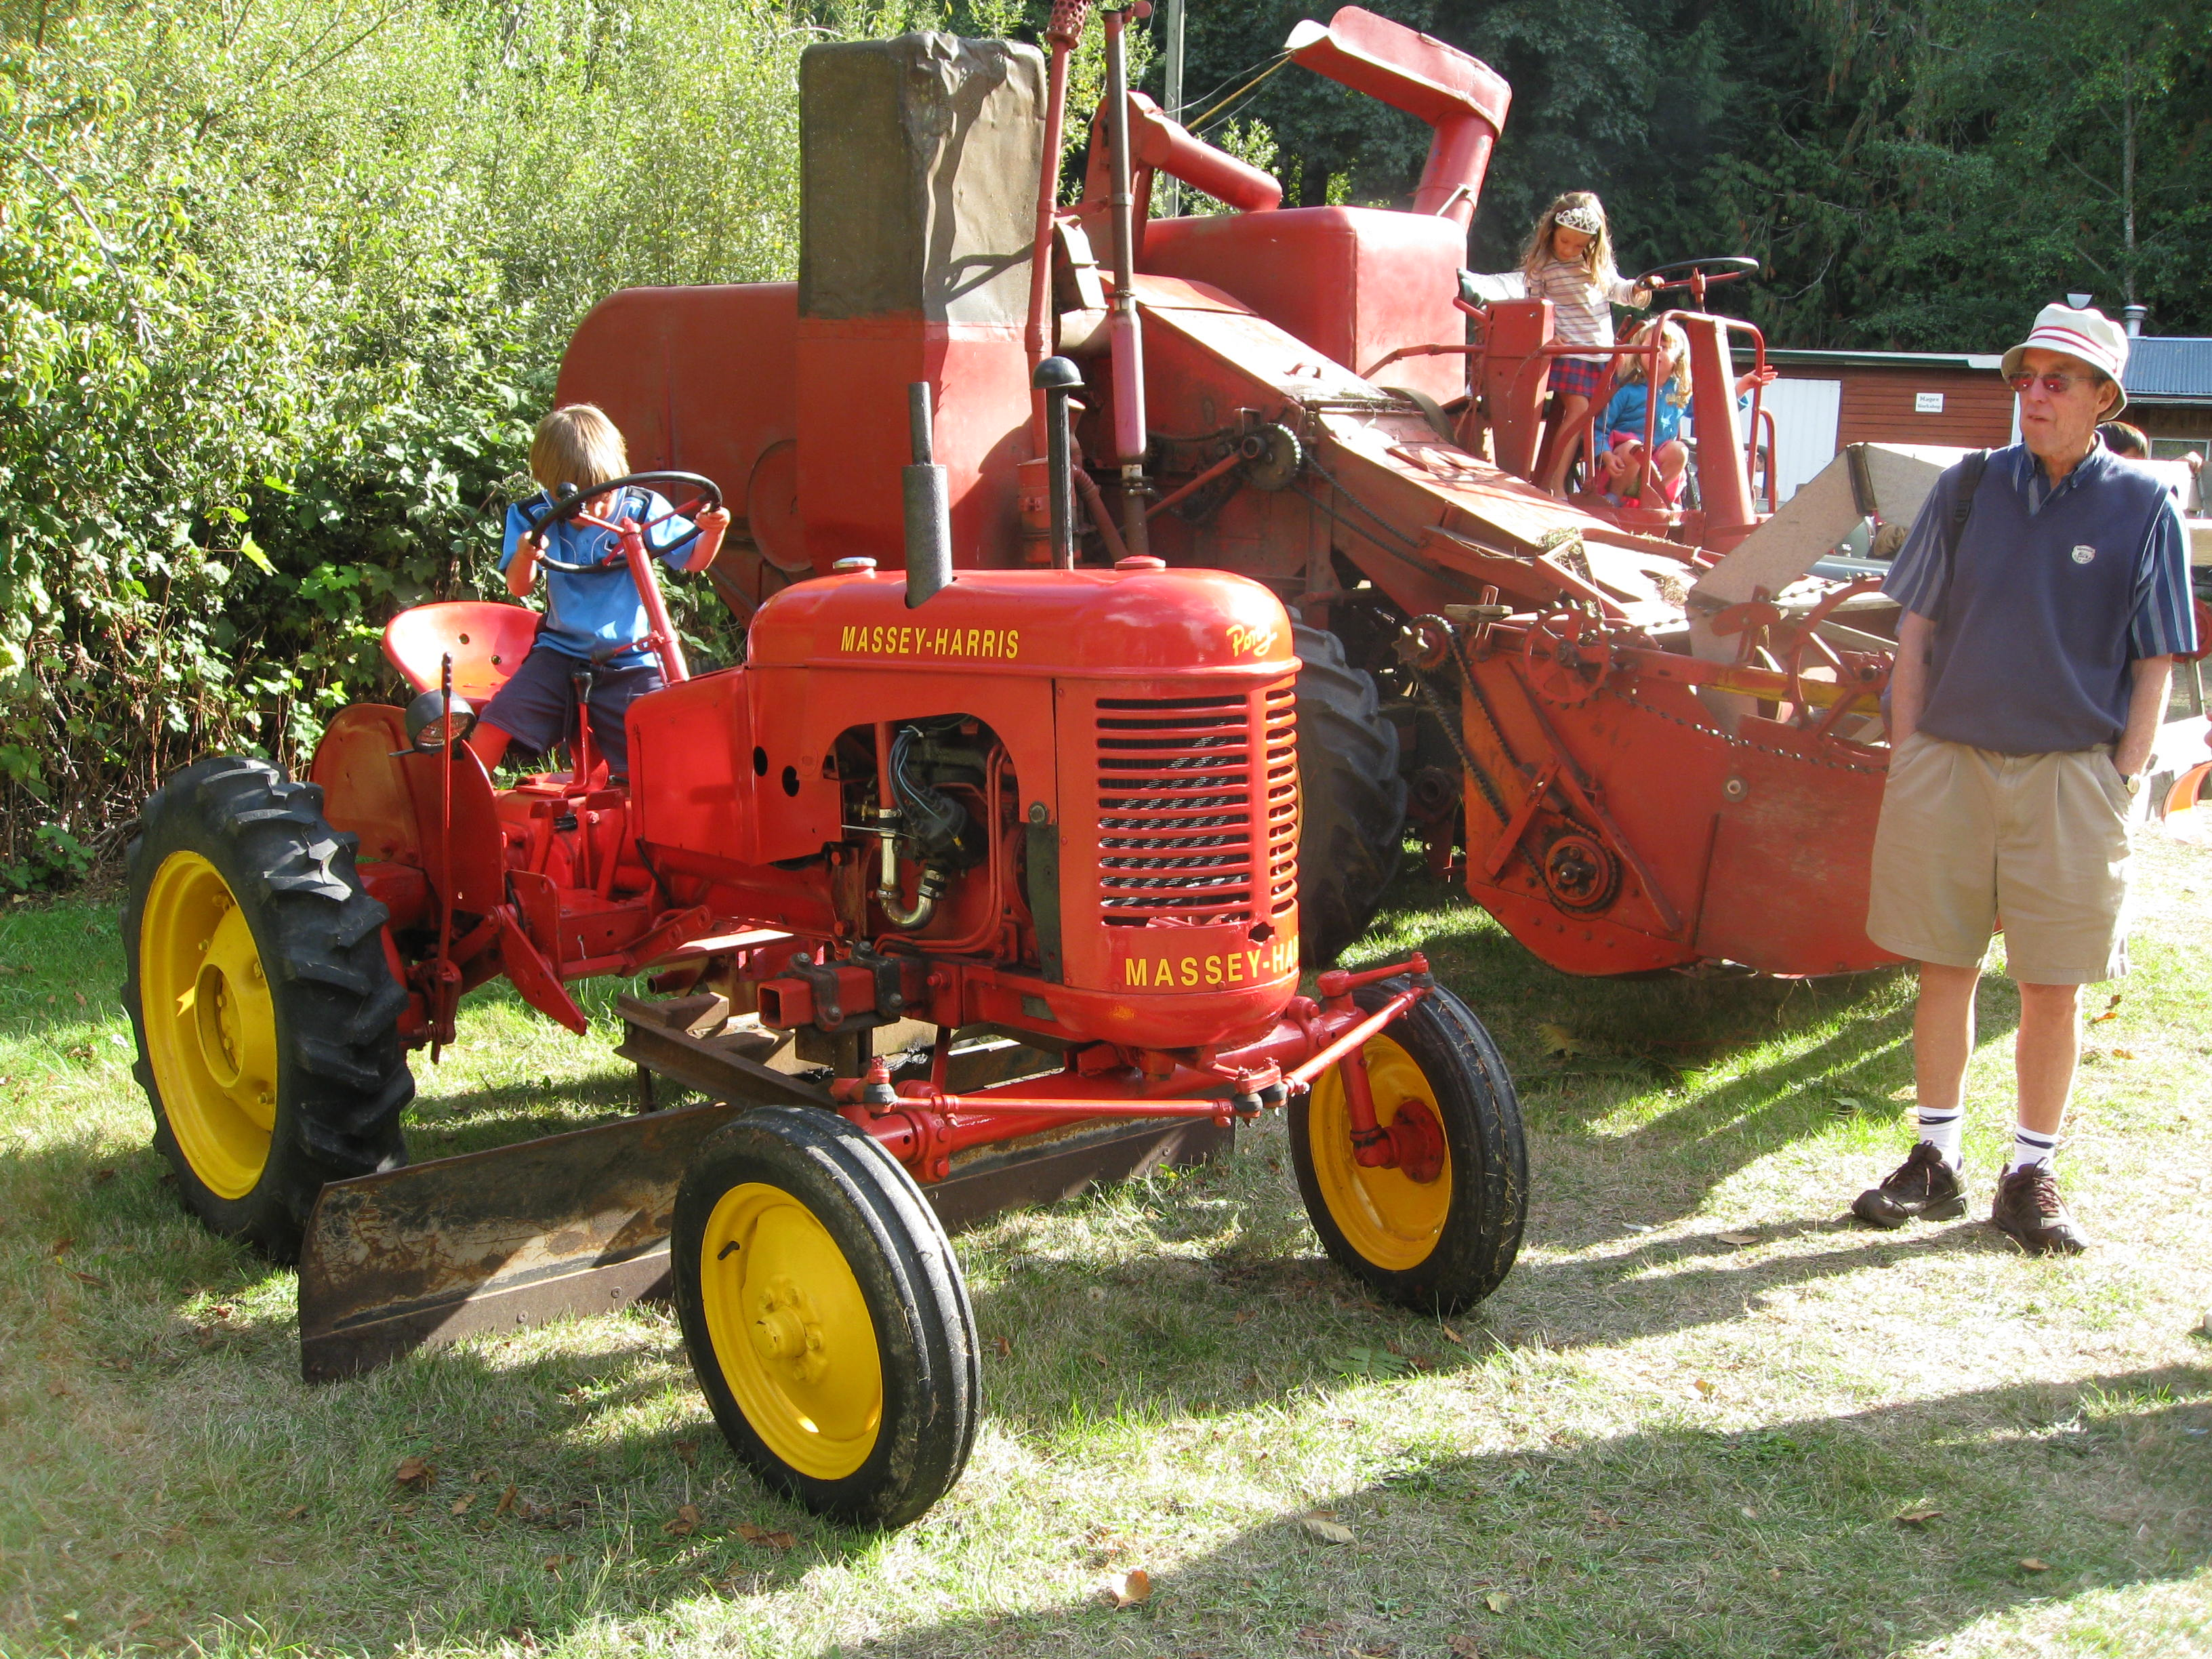 Every boy dream of red tractor! A peek at the past.